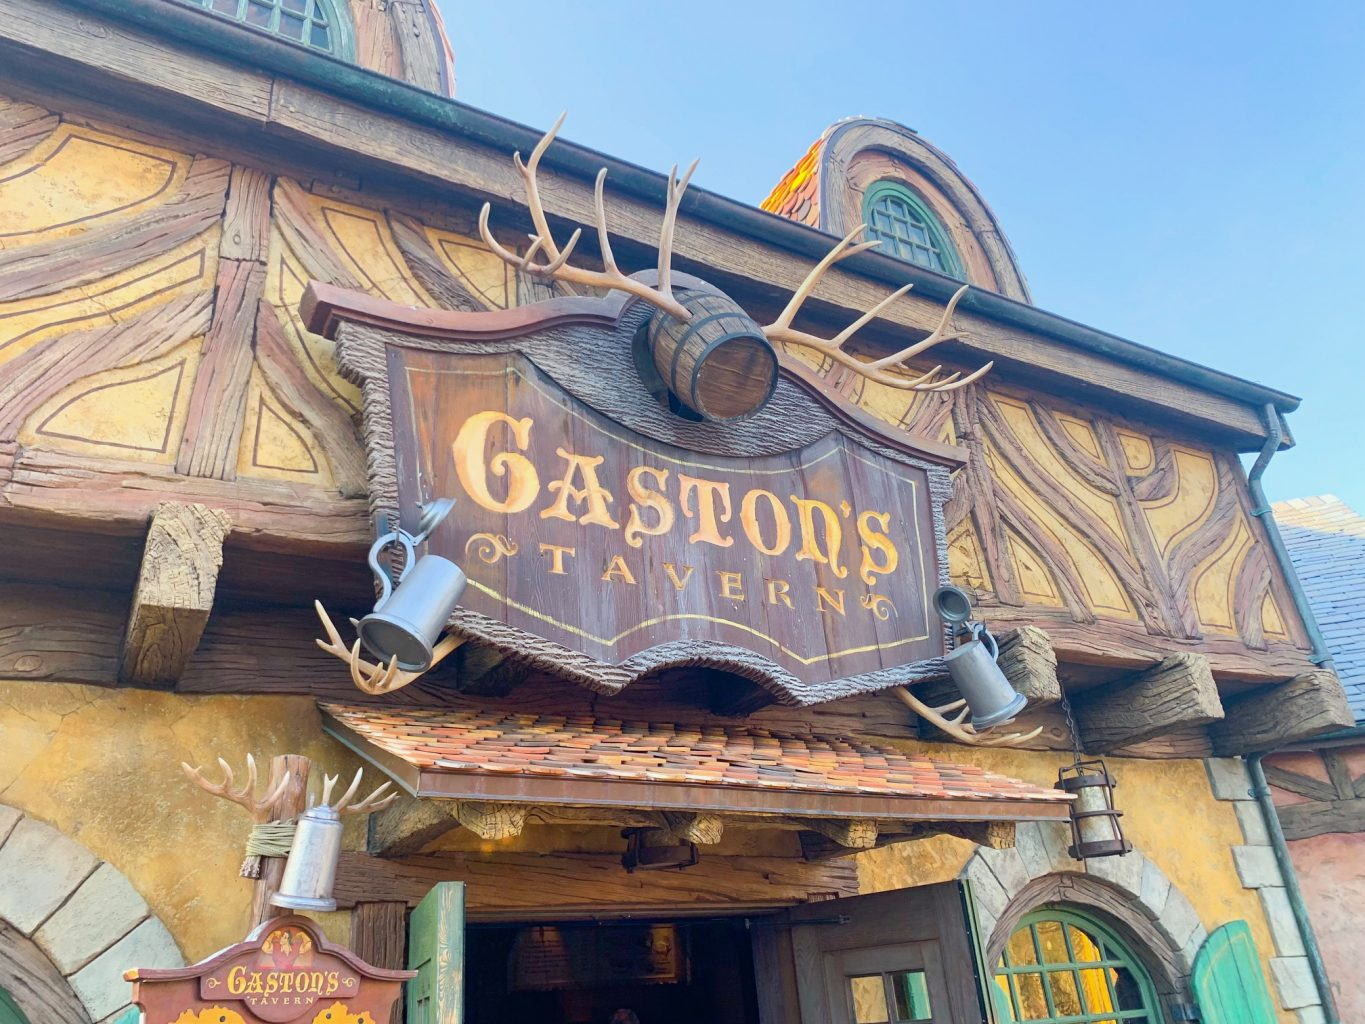 The entrance to Gaston's Tavern, a great counter service option in Magic Kingdom